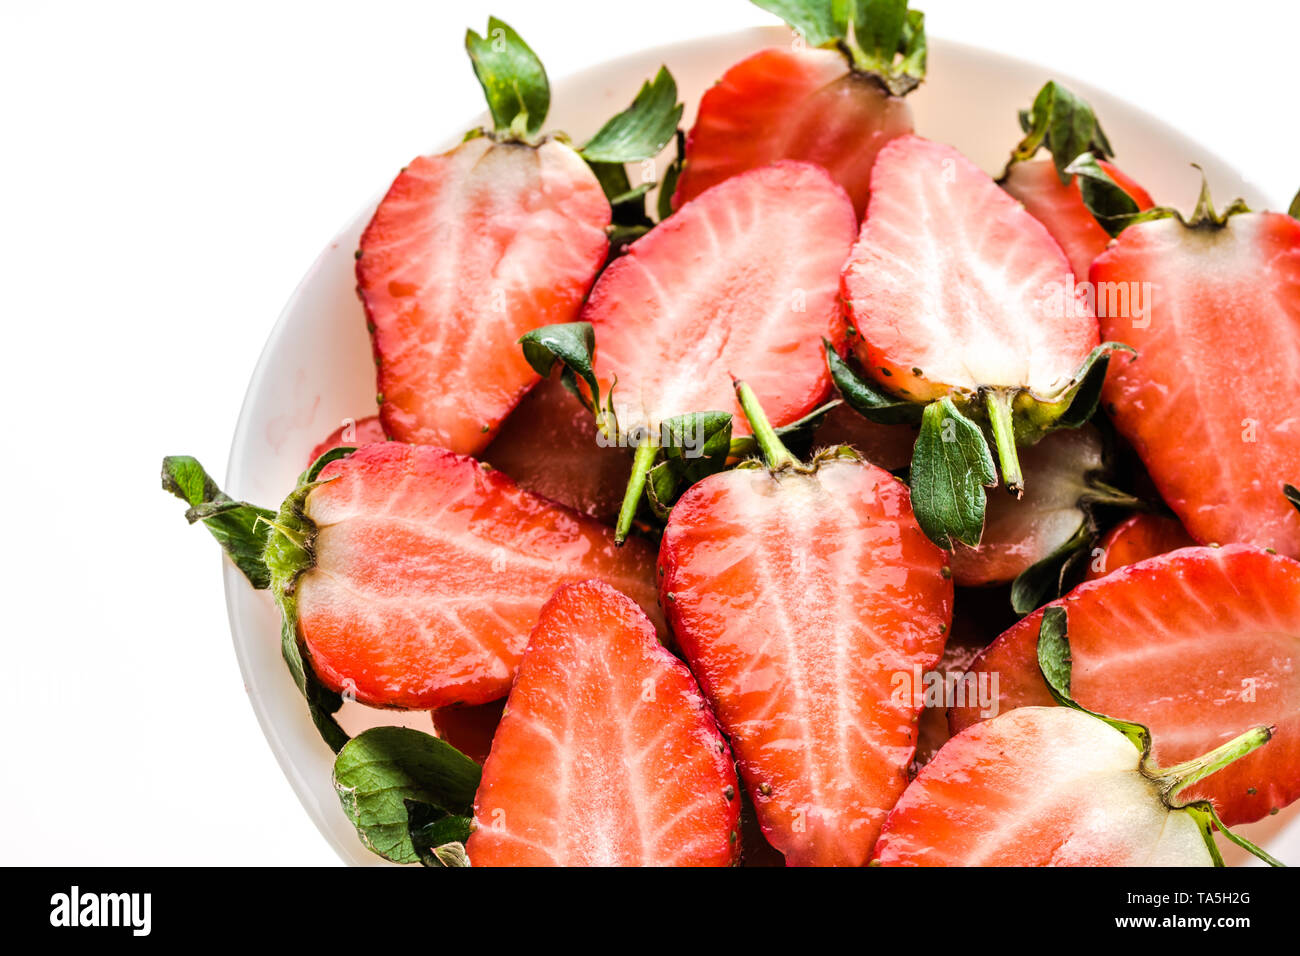 Freshly sliced strawberries. Plate with organic fresh strawberry slices for fruit salad. - Stock Image